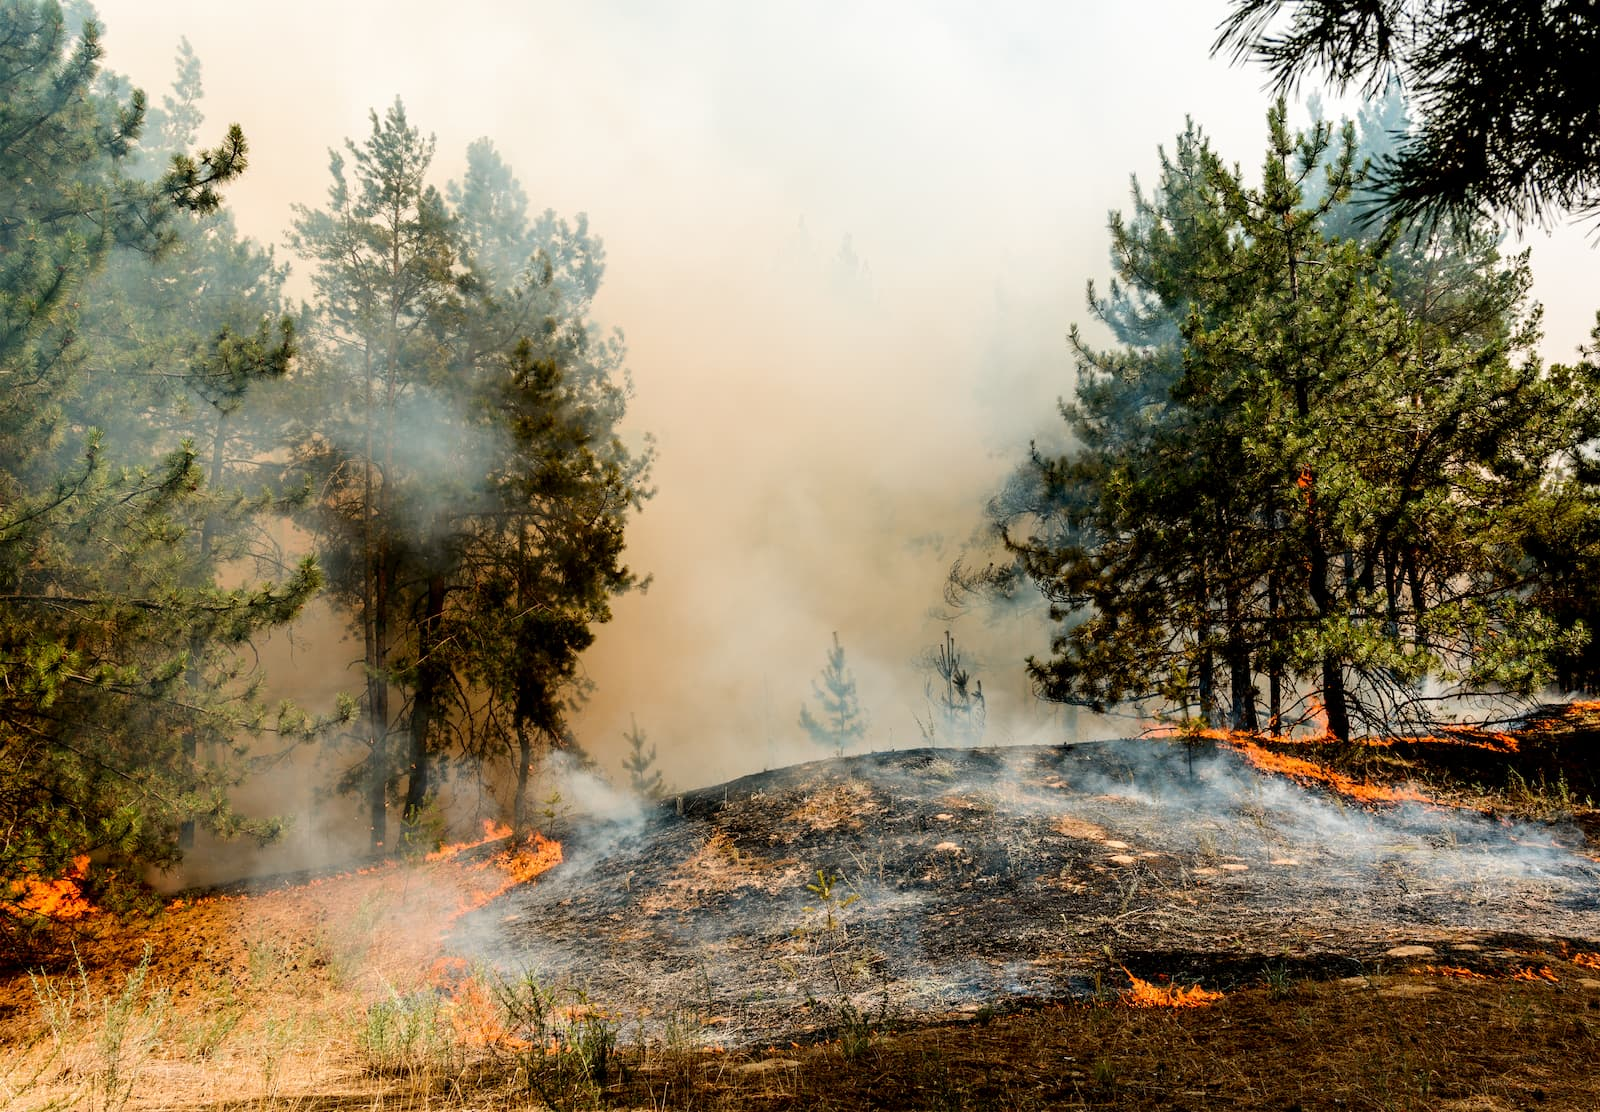 Wildfires in California, Oregon, Washington and the west close public lands.